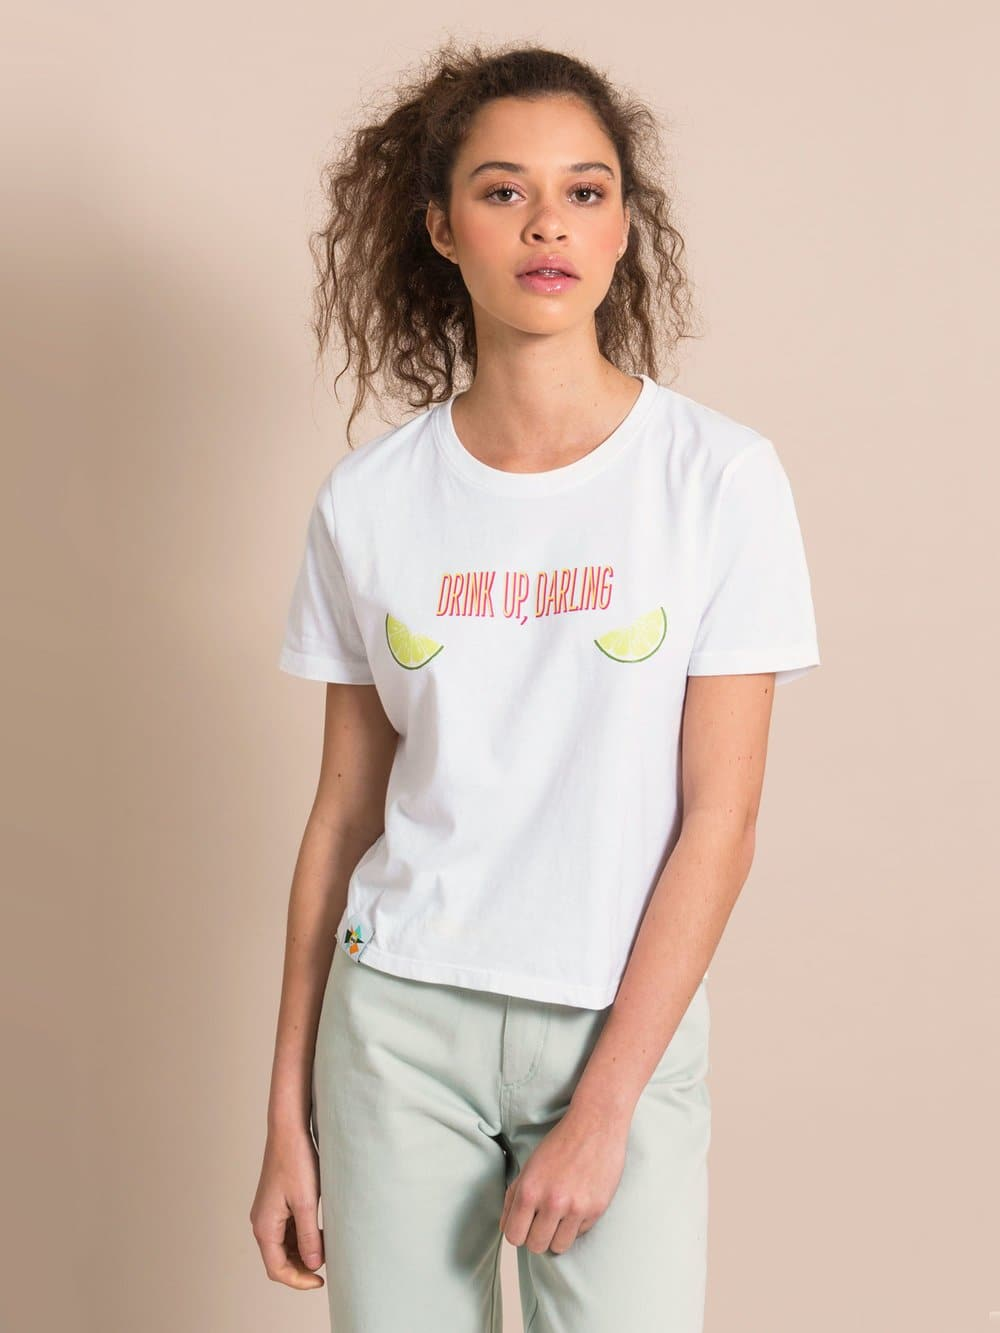 Woman wearing a white sustainable recycled cotton tee with print and light blue jeans